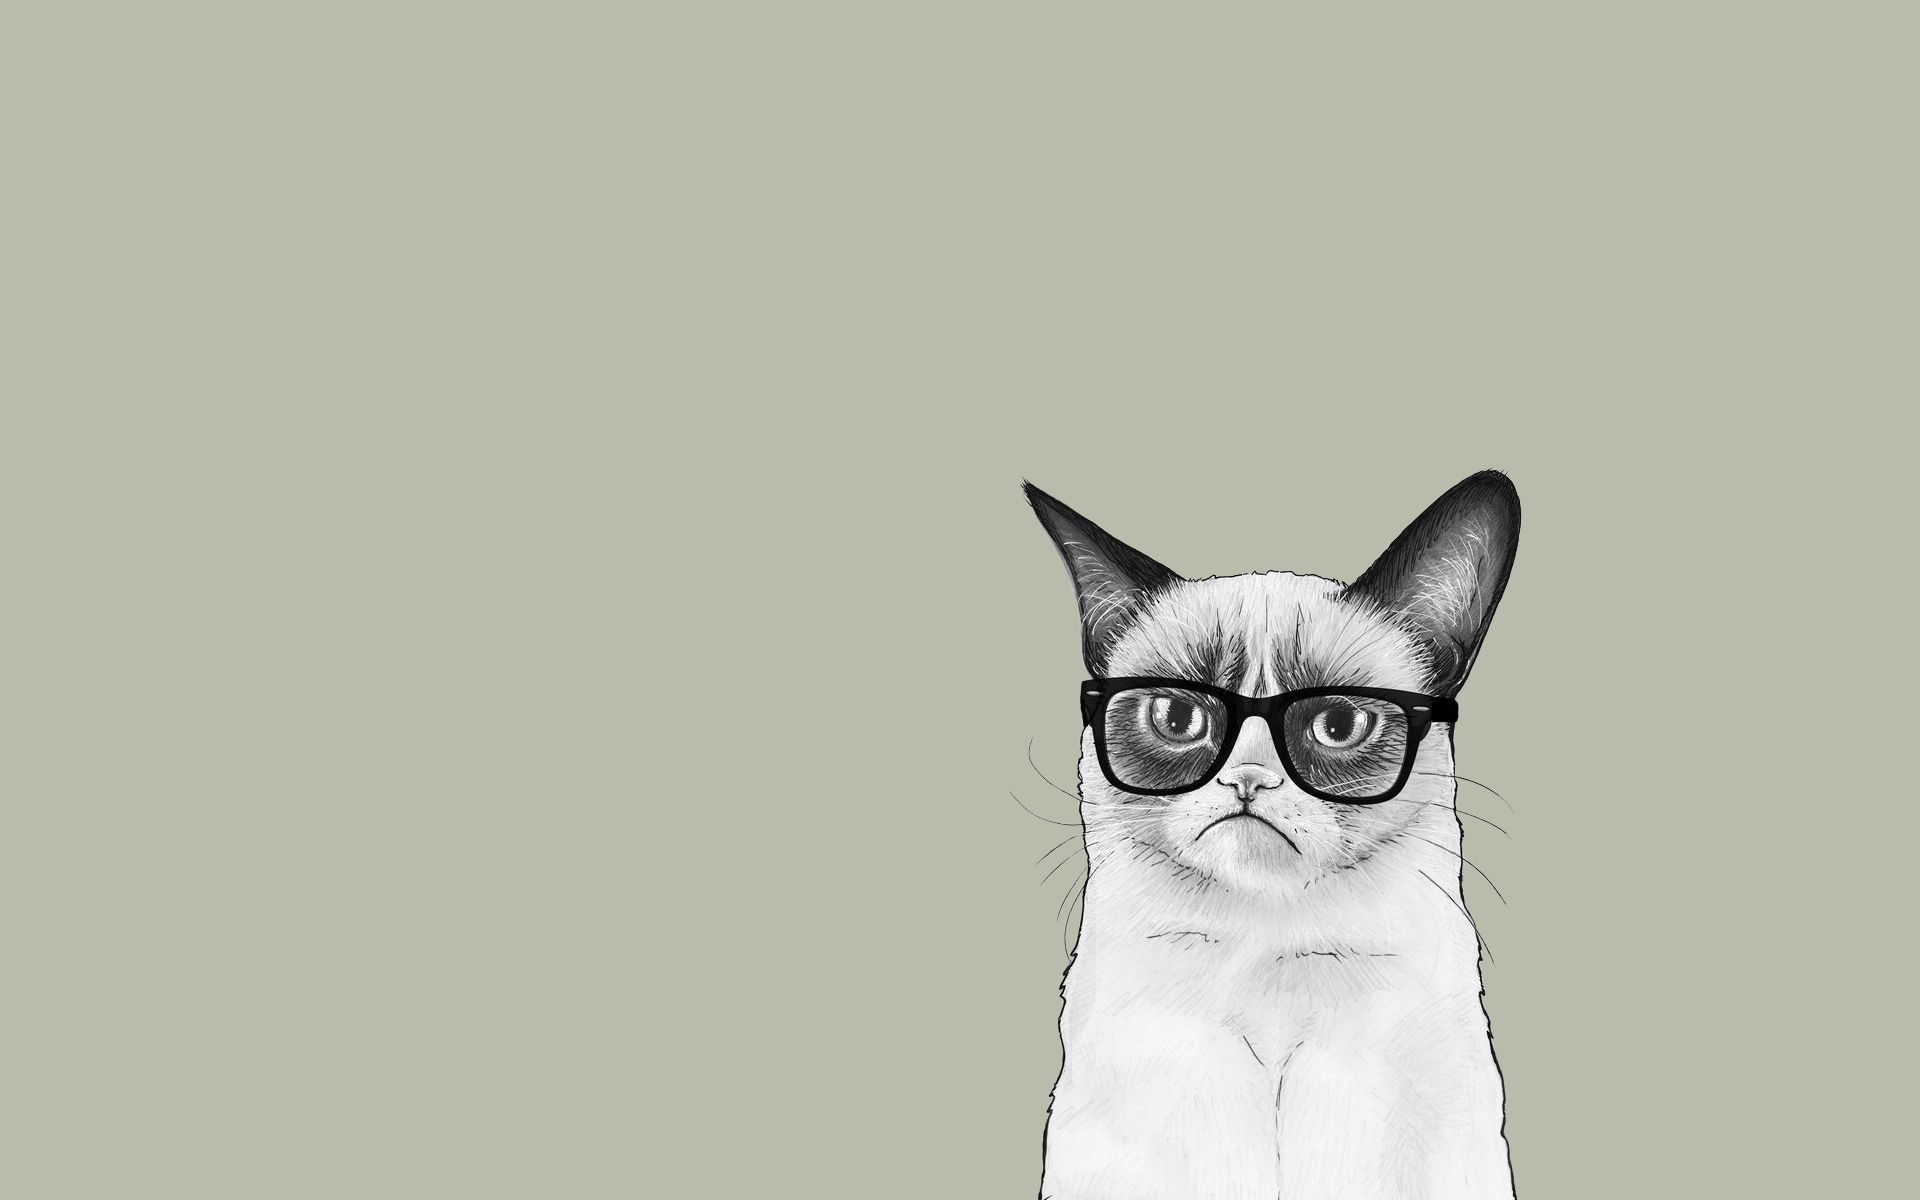 Discount Cute Cat Cartoon Wallpaper Cute Cat Cartoon 1920 1200 Wallpaper Cat Cartoon 35 Wallpaper Desktop Wallpaper Art Minimalist Wallpaper Cartoon Wallpaper